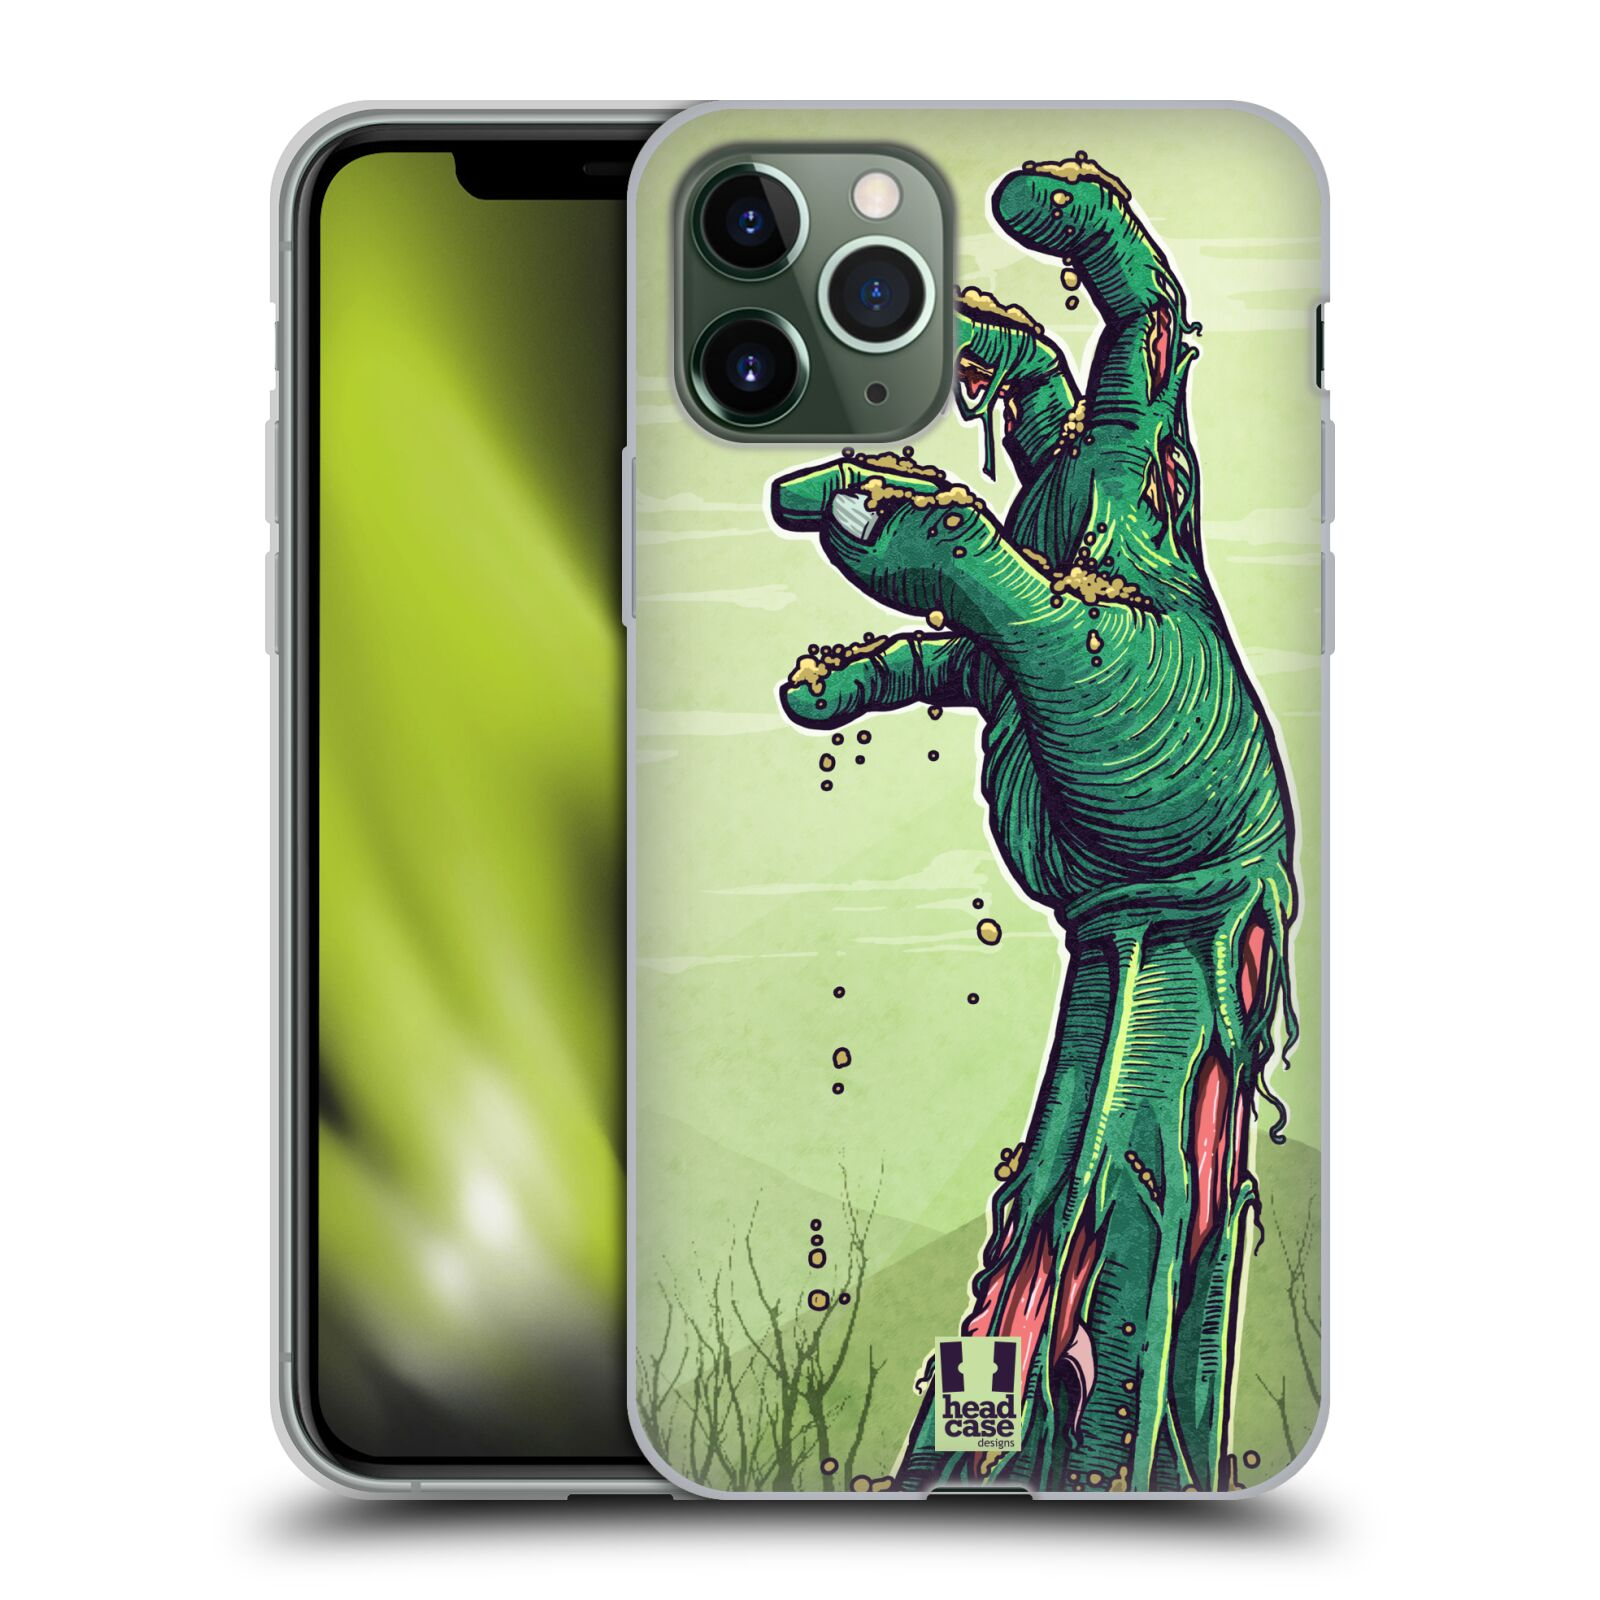 obal iphone 7 apple - Silikonové pouzdro na mobil Apple iPhone 11 Pro - Head Case - ZOMBIE RUKA